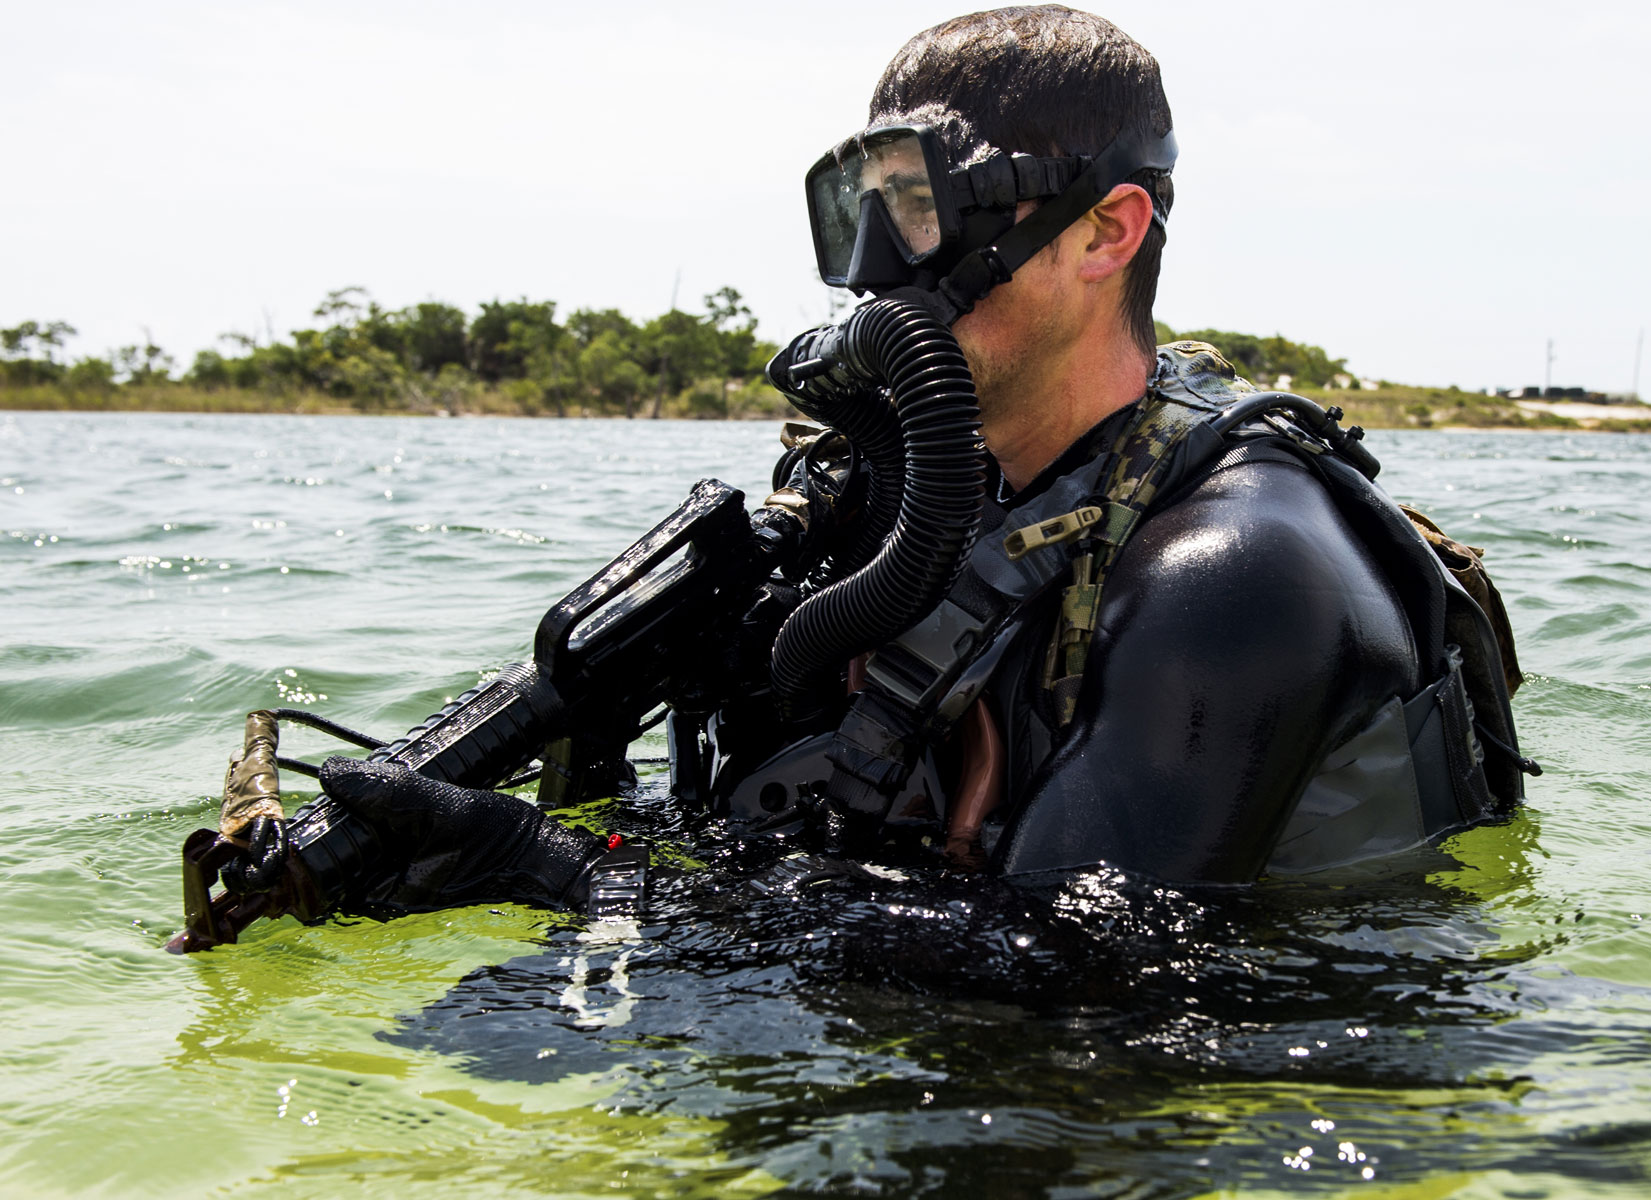 U.S. Navy Sea, Air, and Land Team Members conduct proof of concept and operational testing and evaluation of tactics, techniques and procedures development during exercise TRIDENT 17 on Hurlburt Field, Florida.